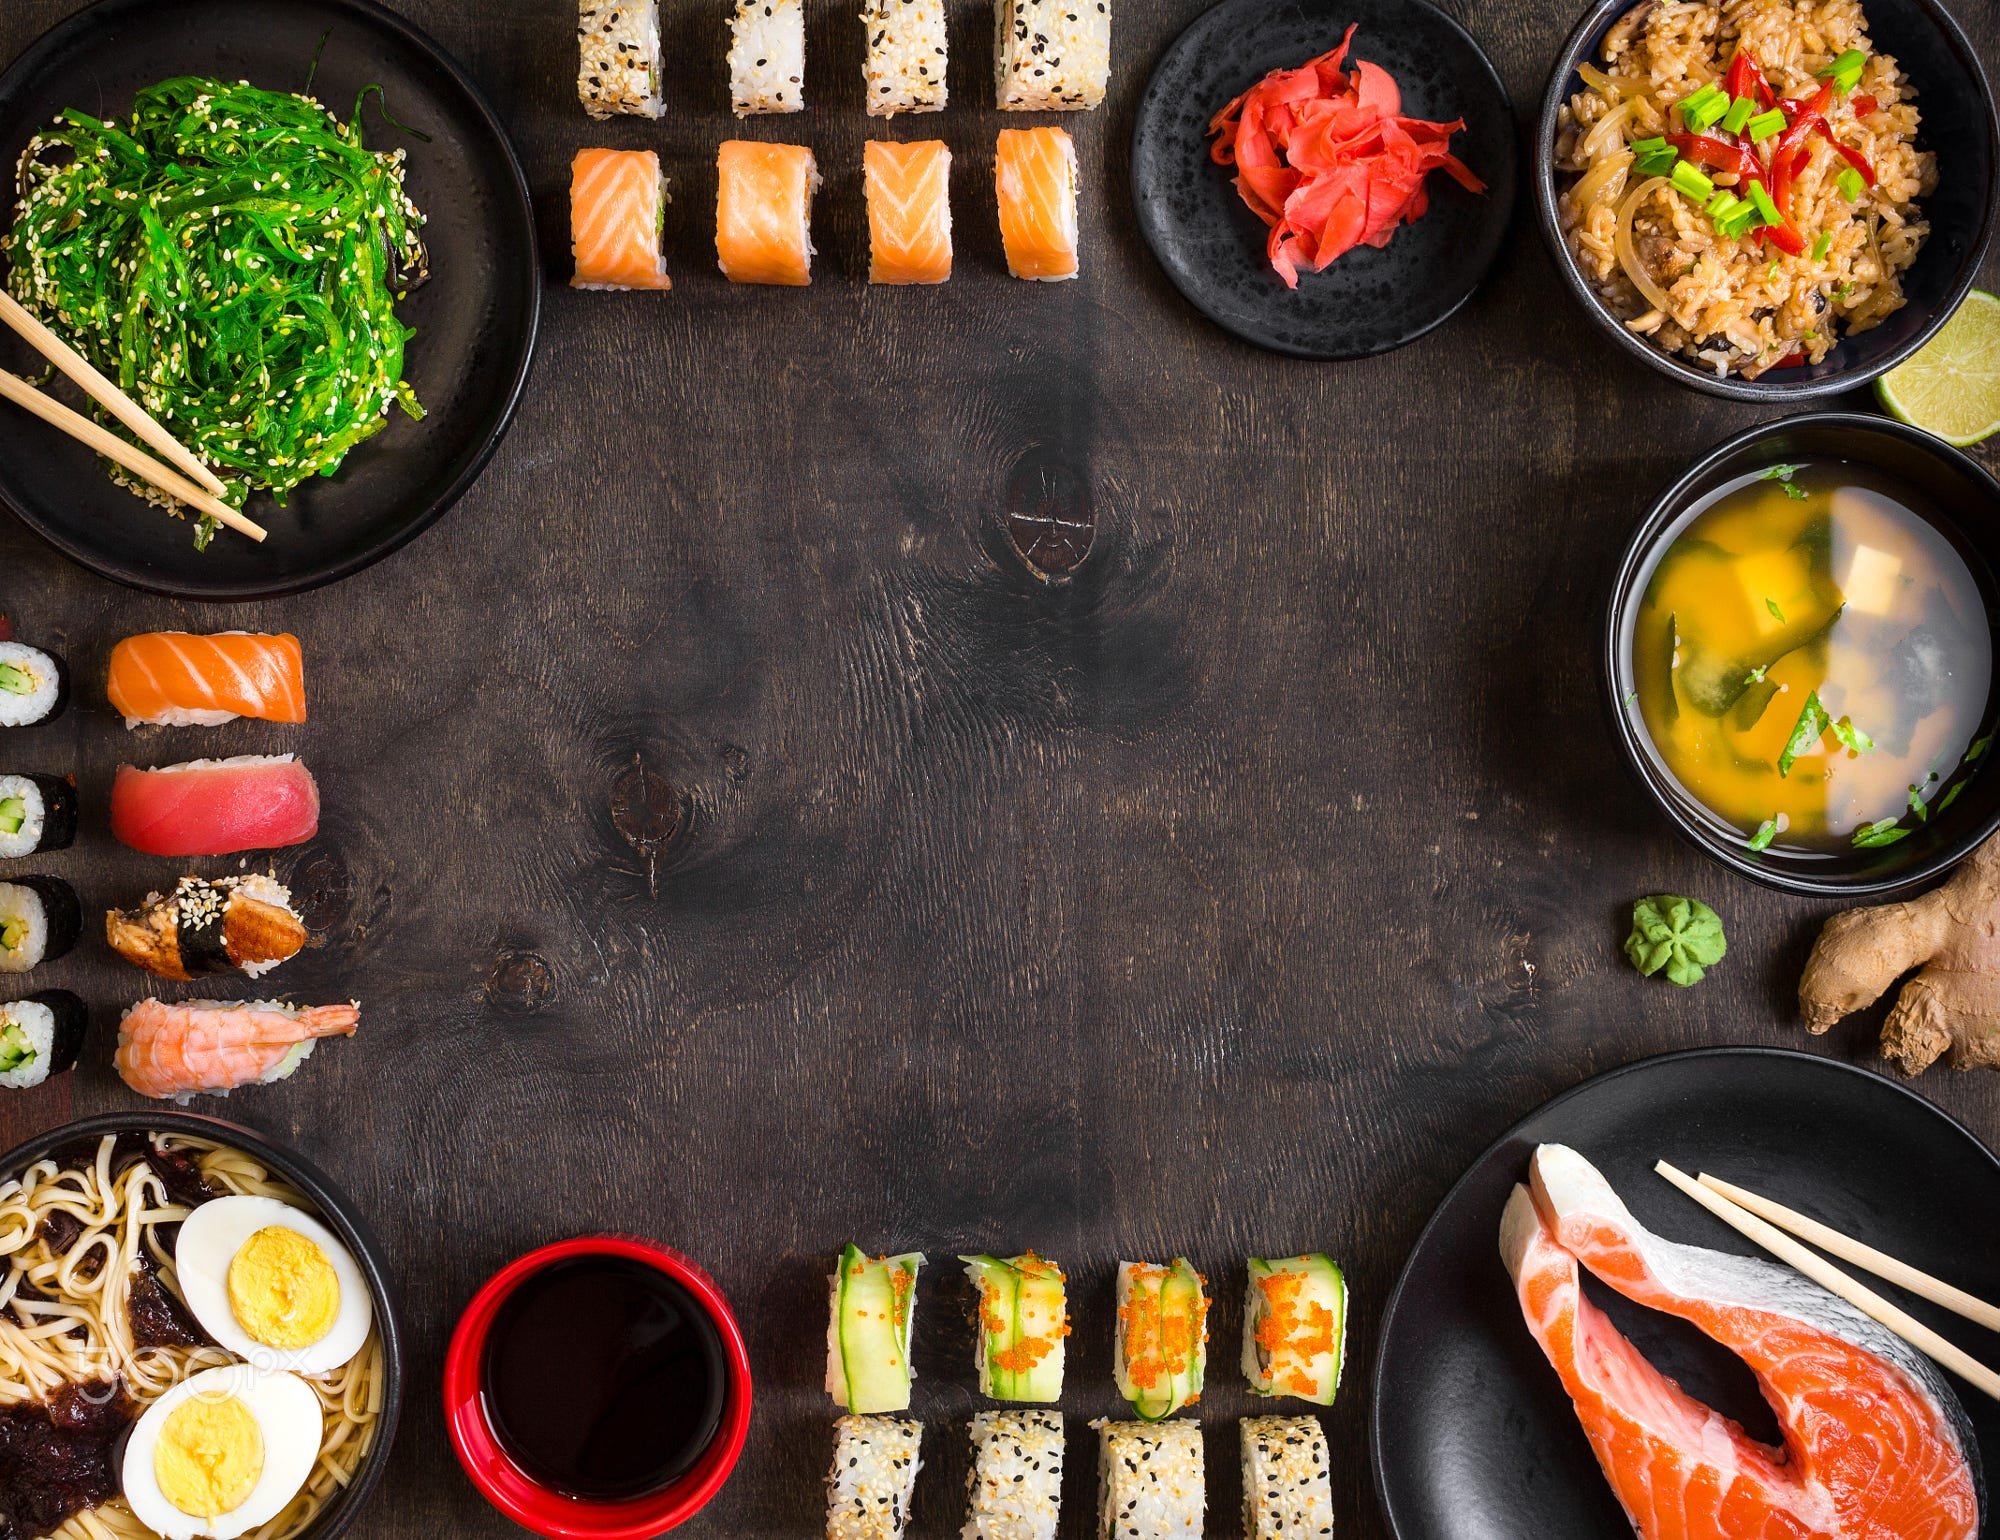 Sushi and japanese food on dark background